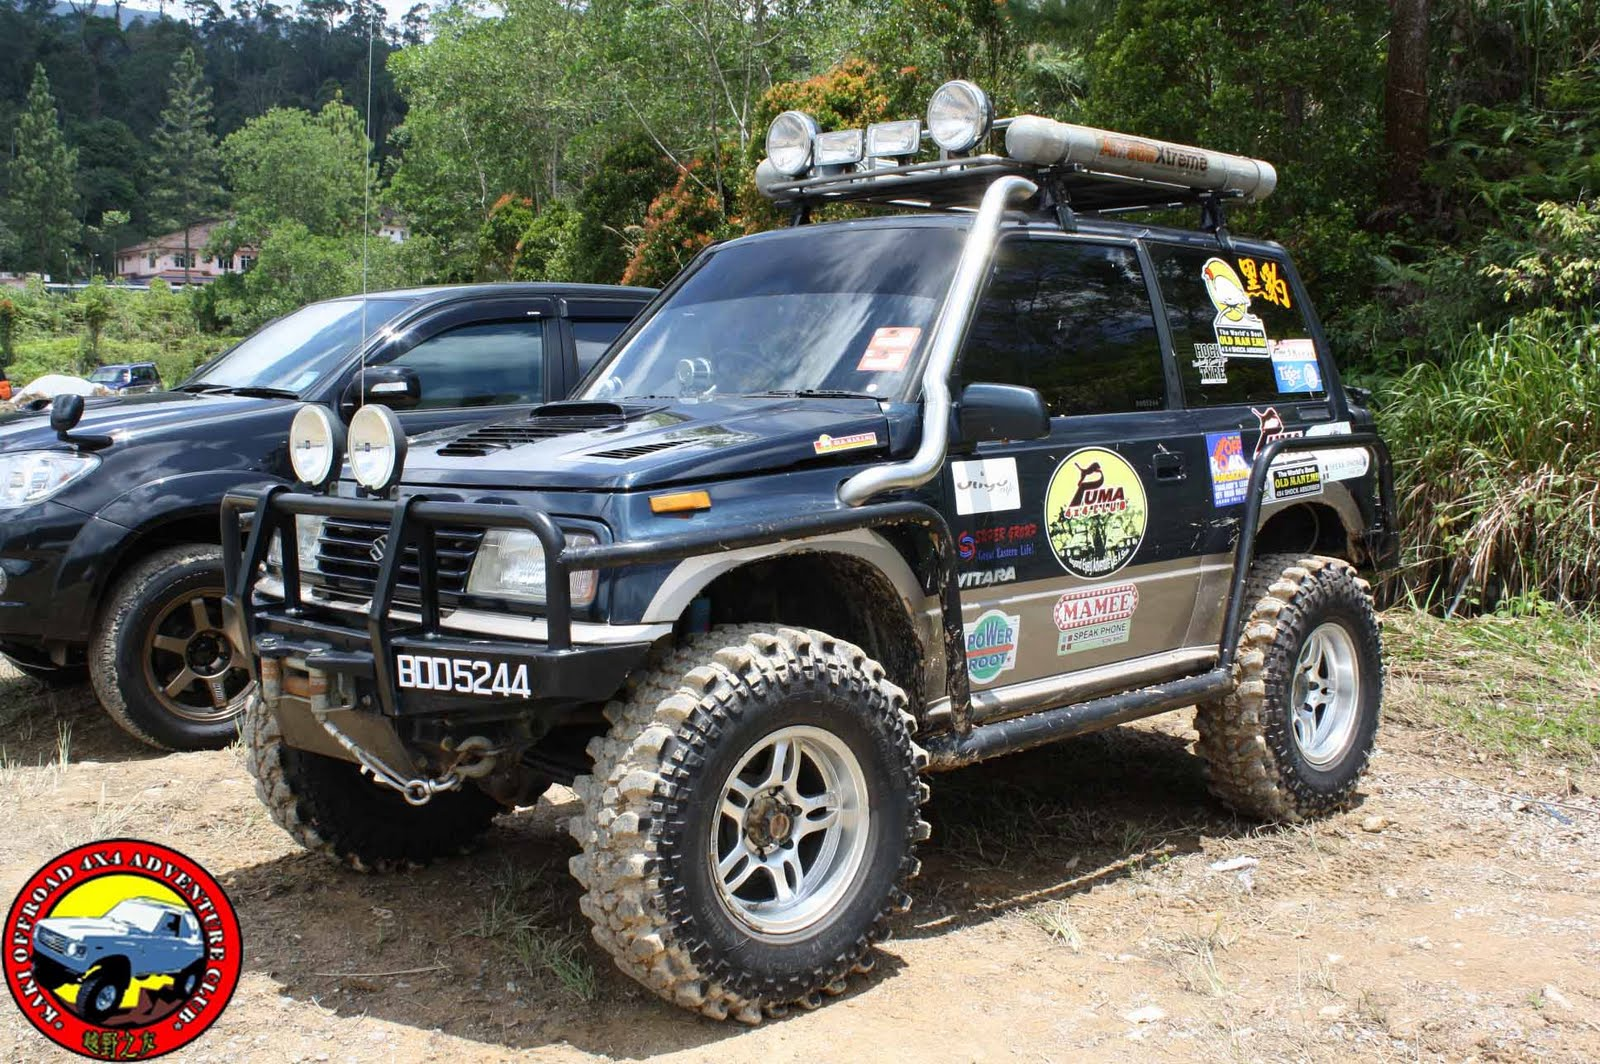 kaki offroad 4x4 adventure club suzuki vitara modification. Black Bedroom Furniture Sets. Home Design Ideas